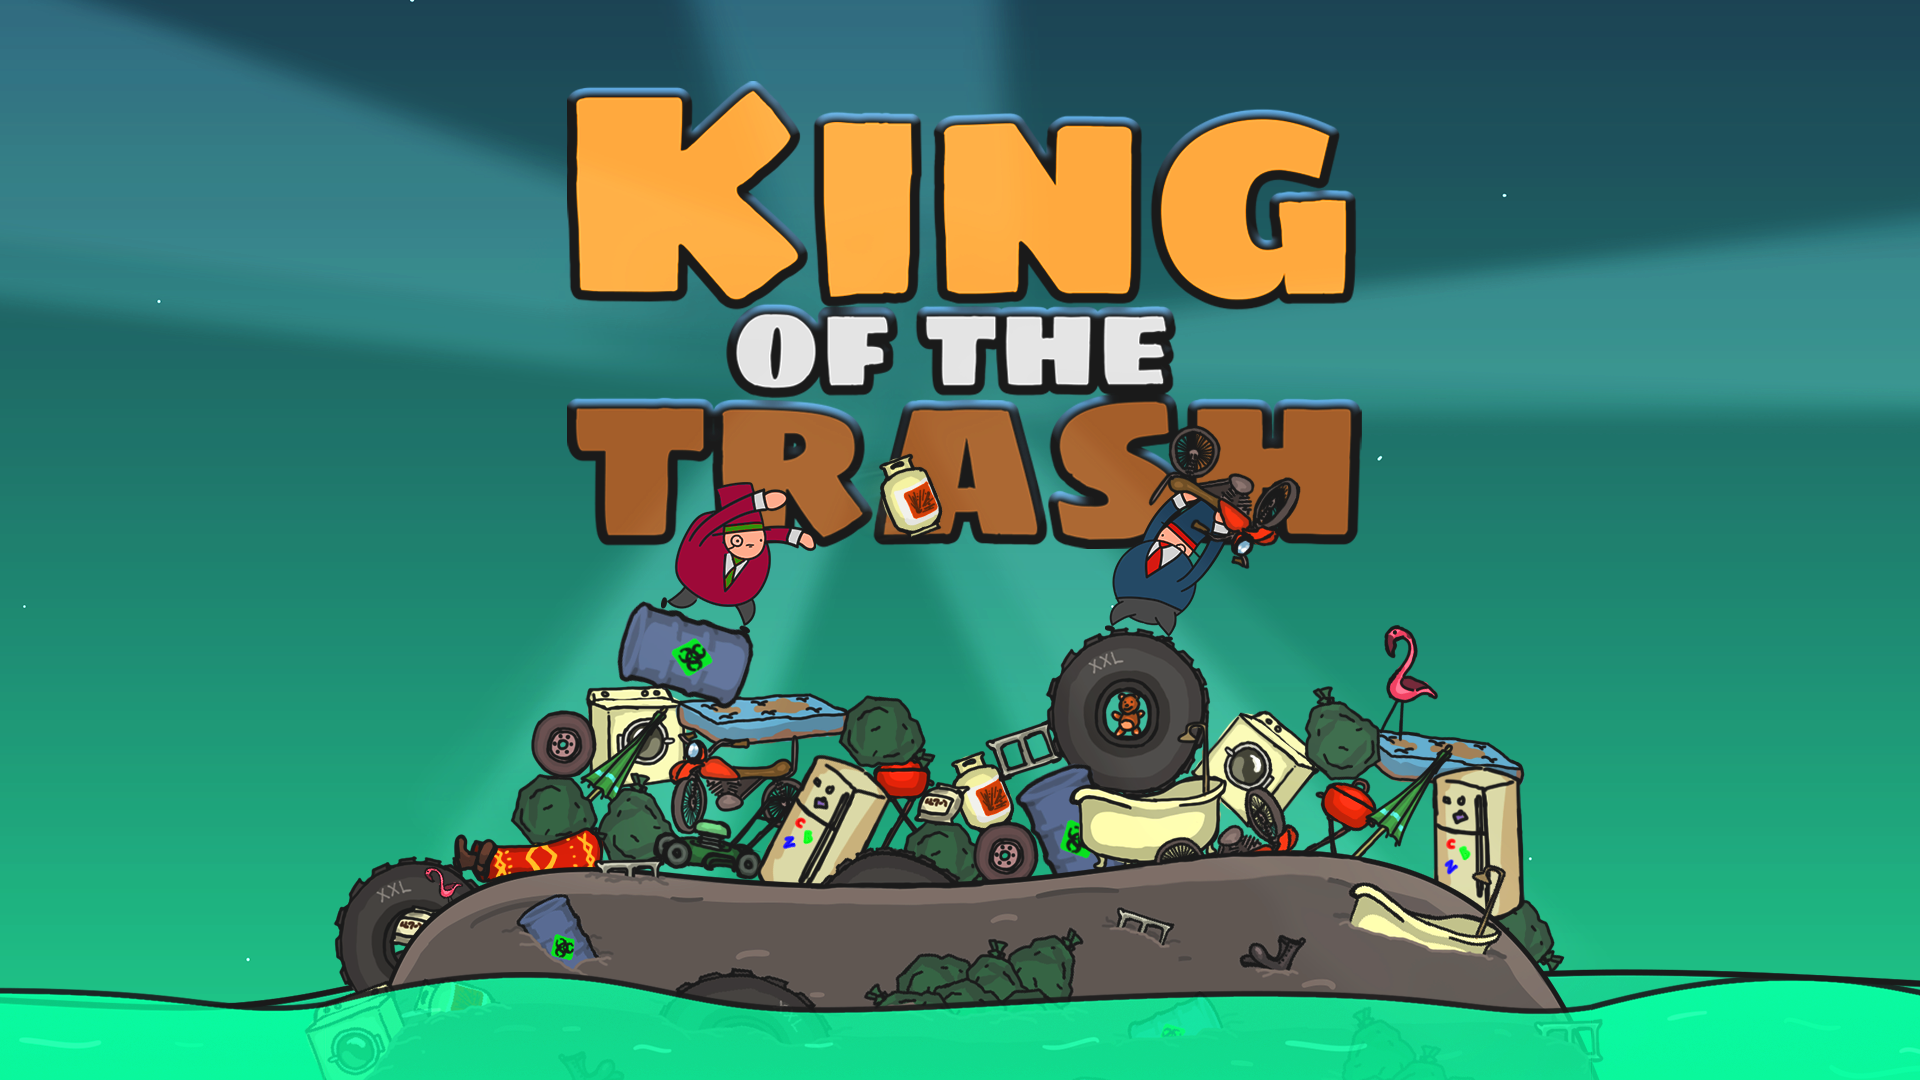 King of the Trash